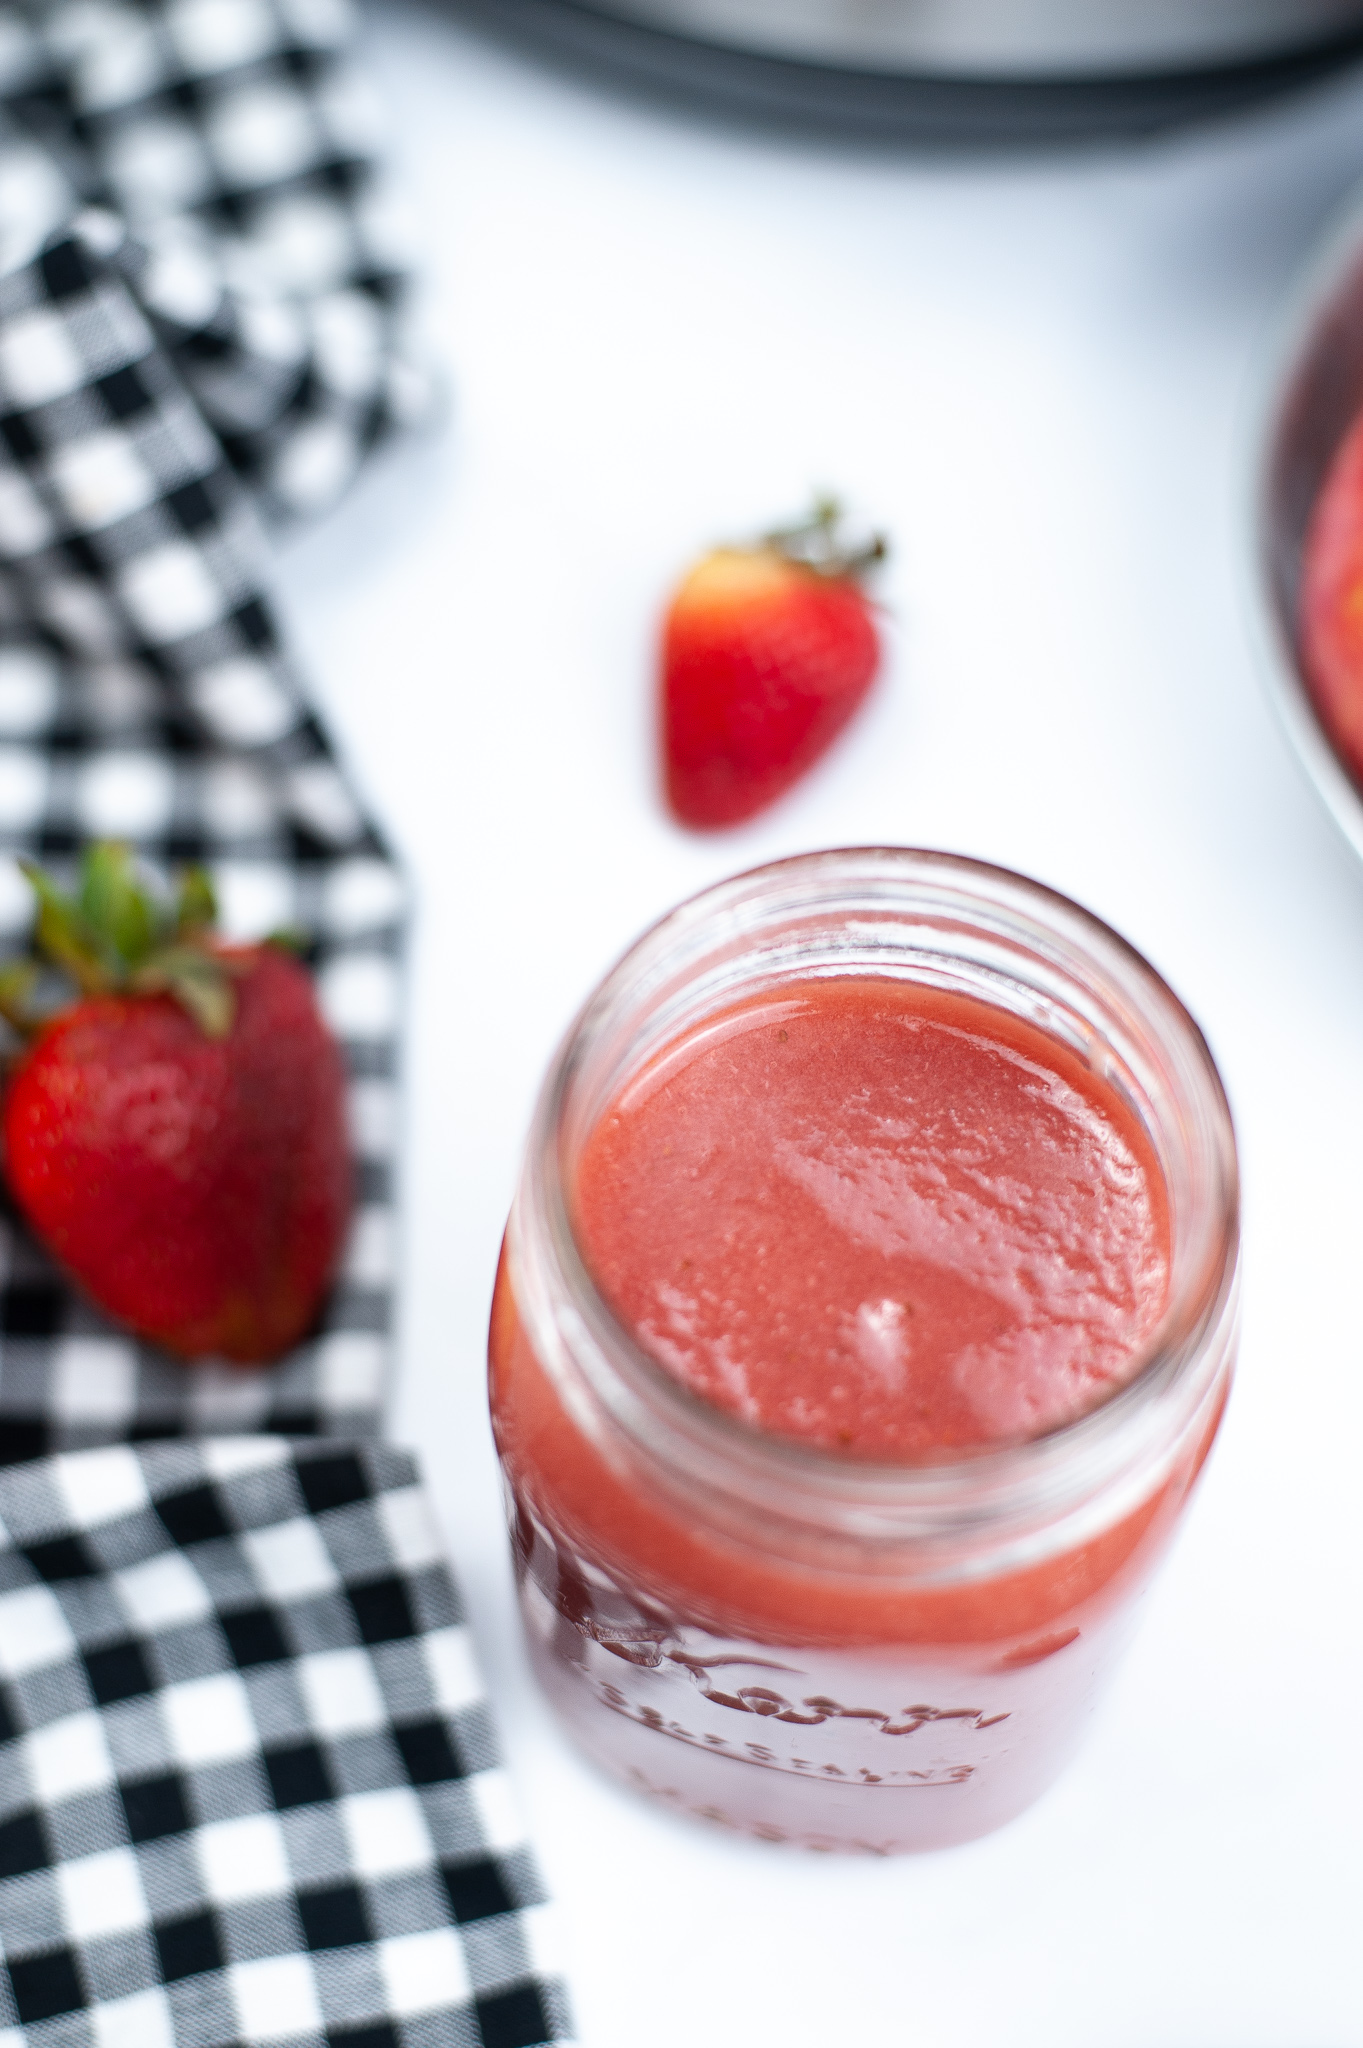 Top shot of strawberry applesauce surrounded by whole strawberries.